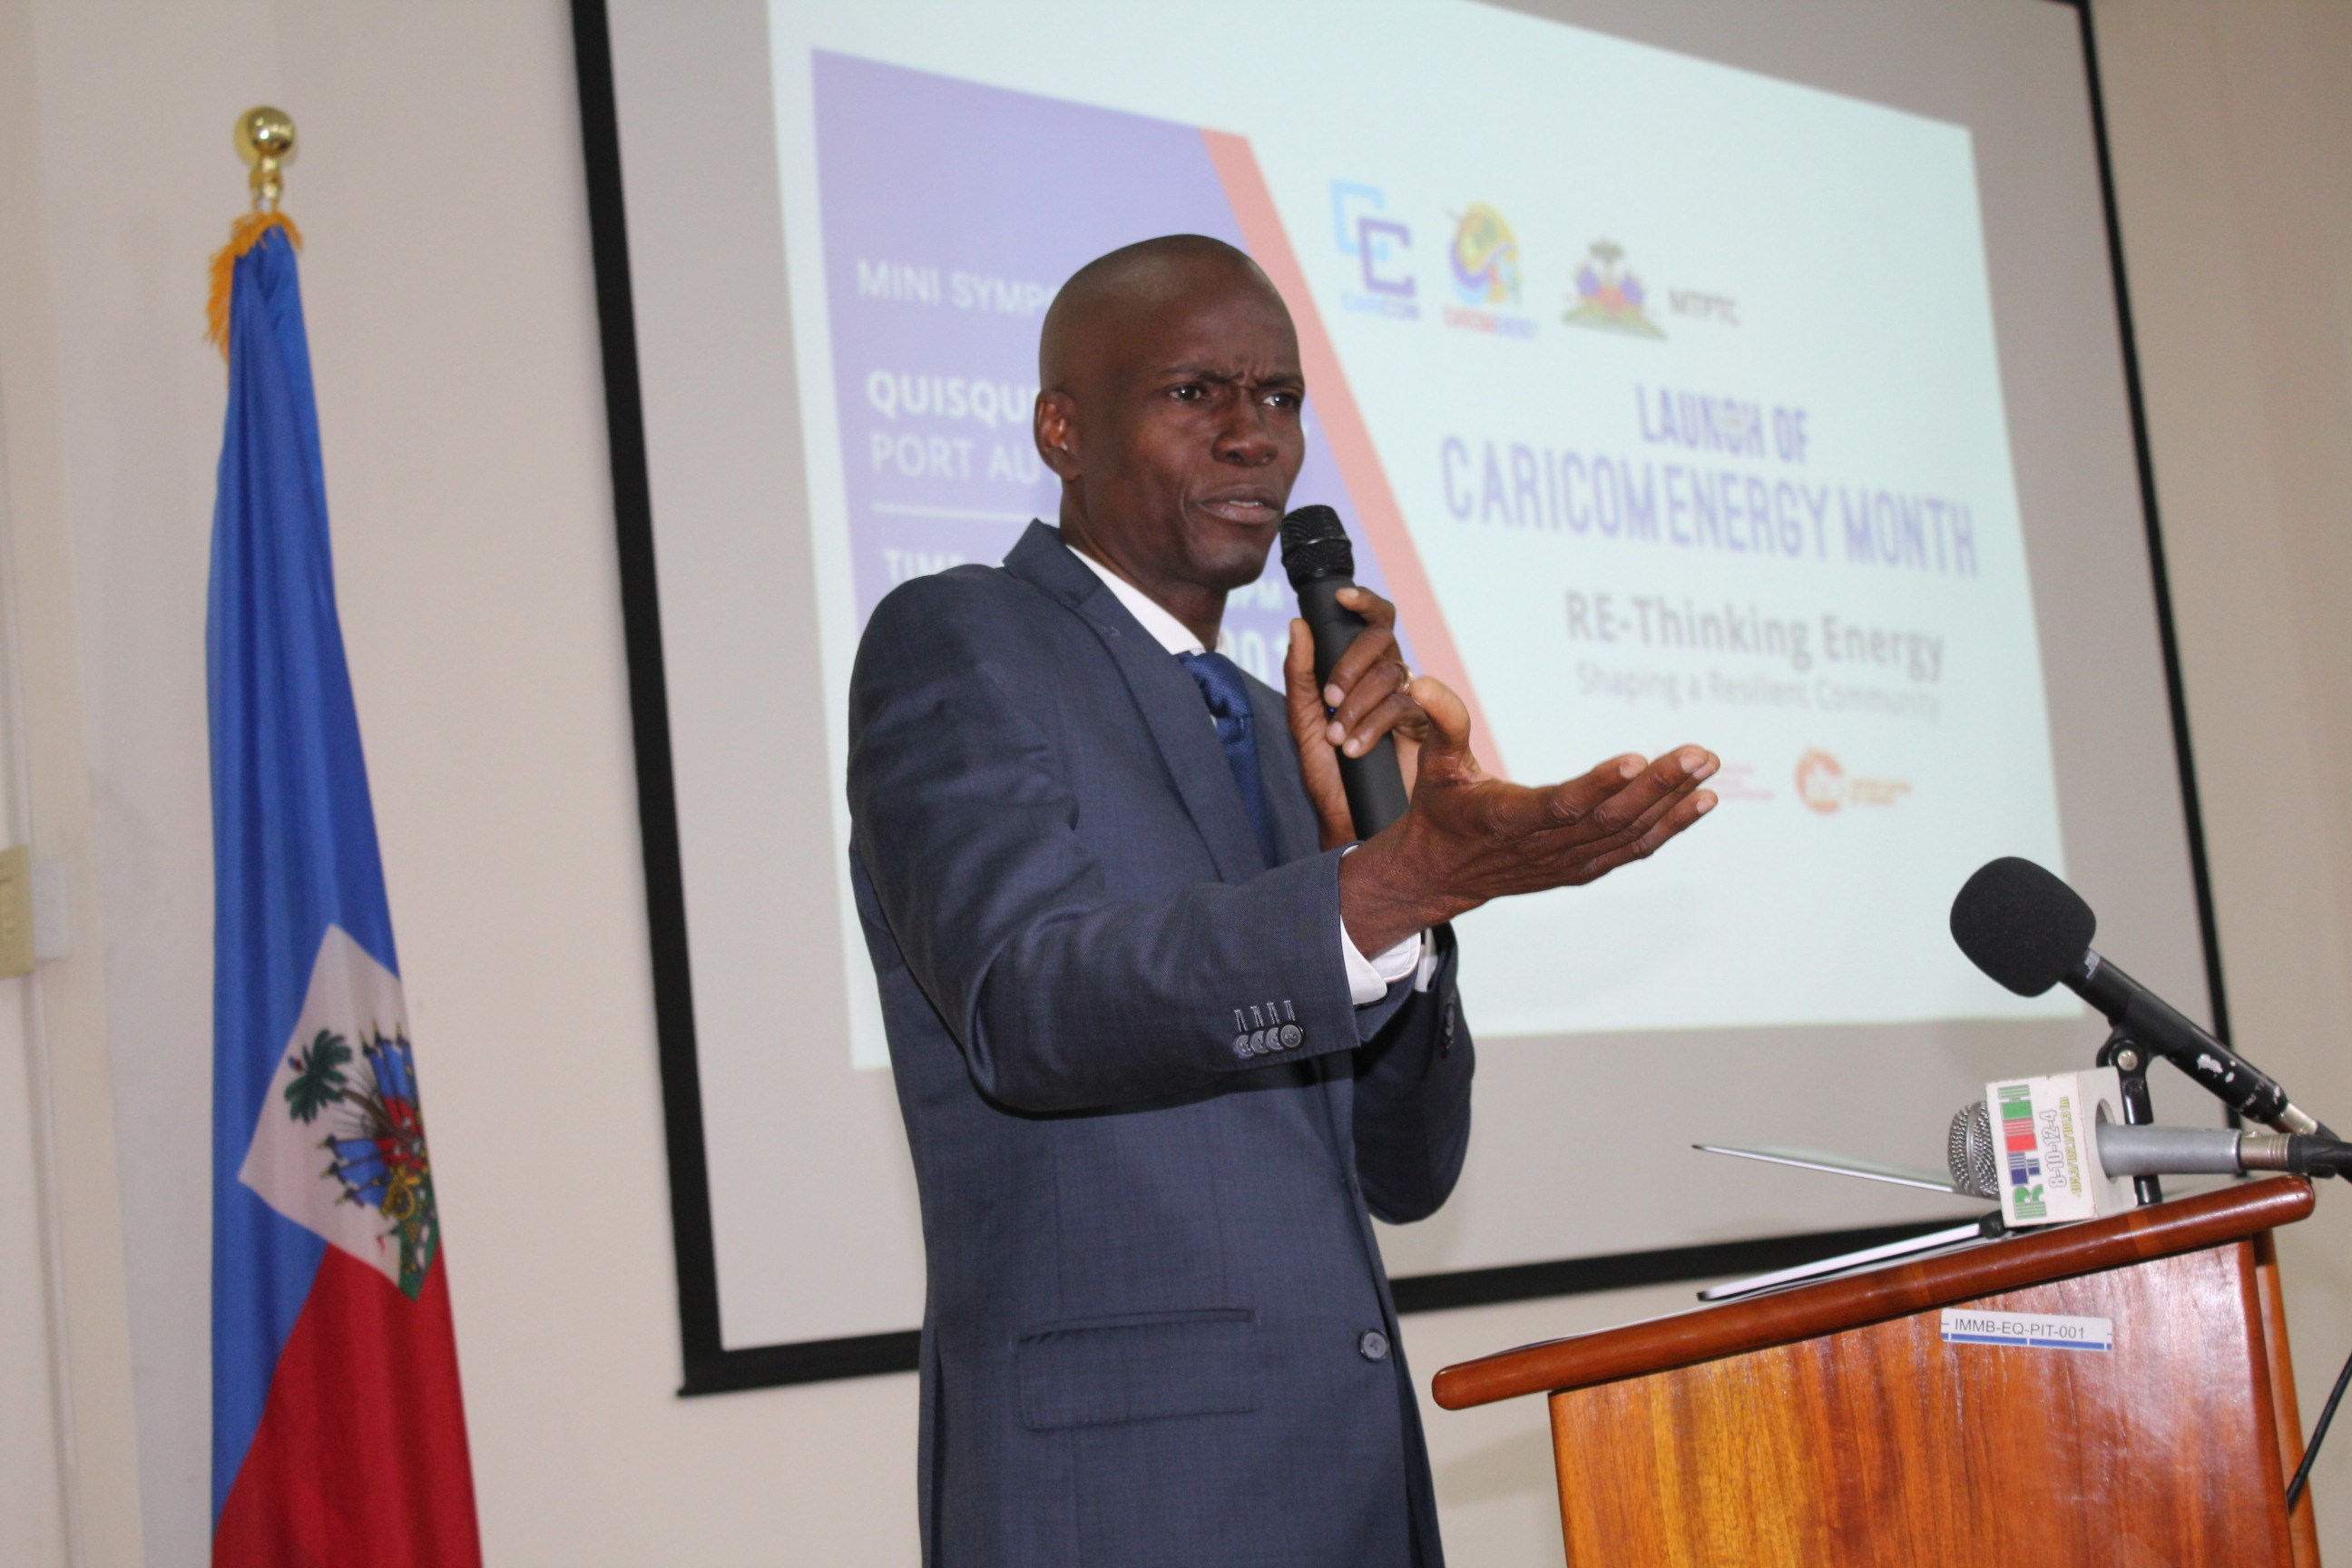 President of Haiti, His Excellency Jovenel Moise addresses the Launch